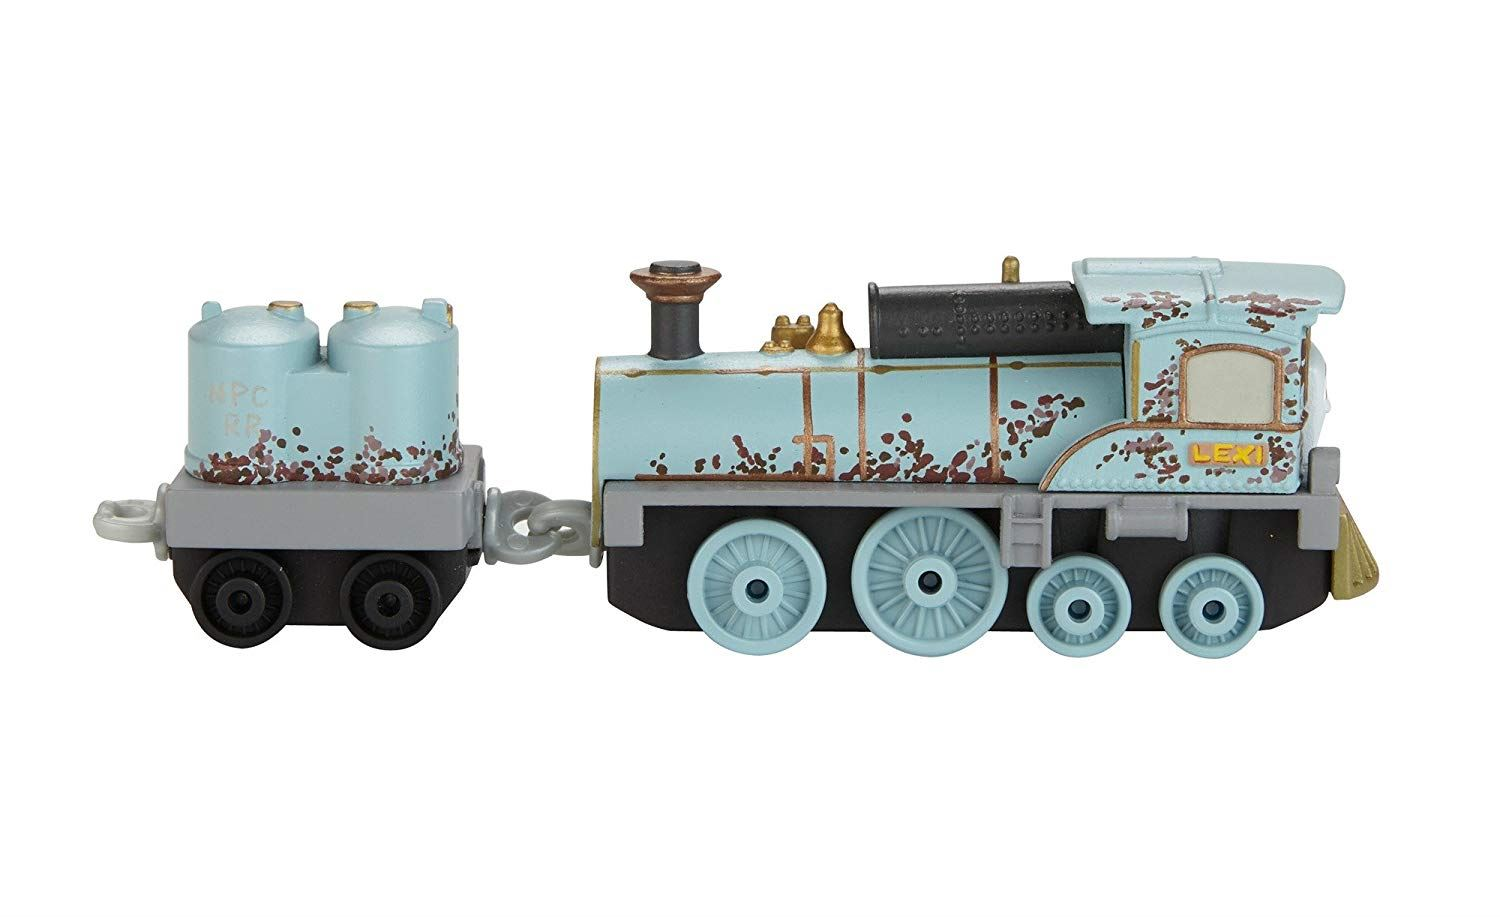 Thomas-amp-Friends-Adventures-Ferdinand-lexi-Shane-Dash-Huge-Bill-Trains Indexbild 30